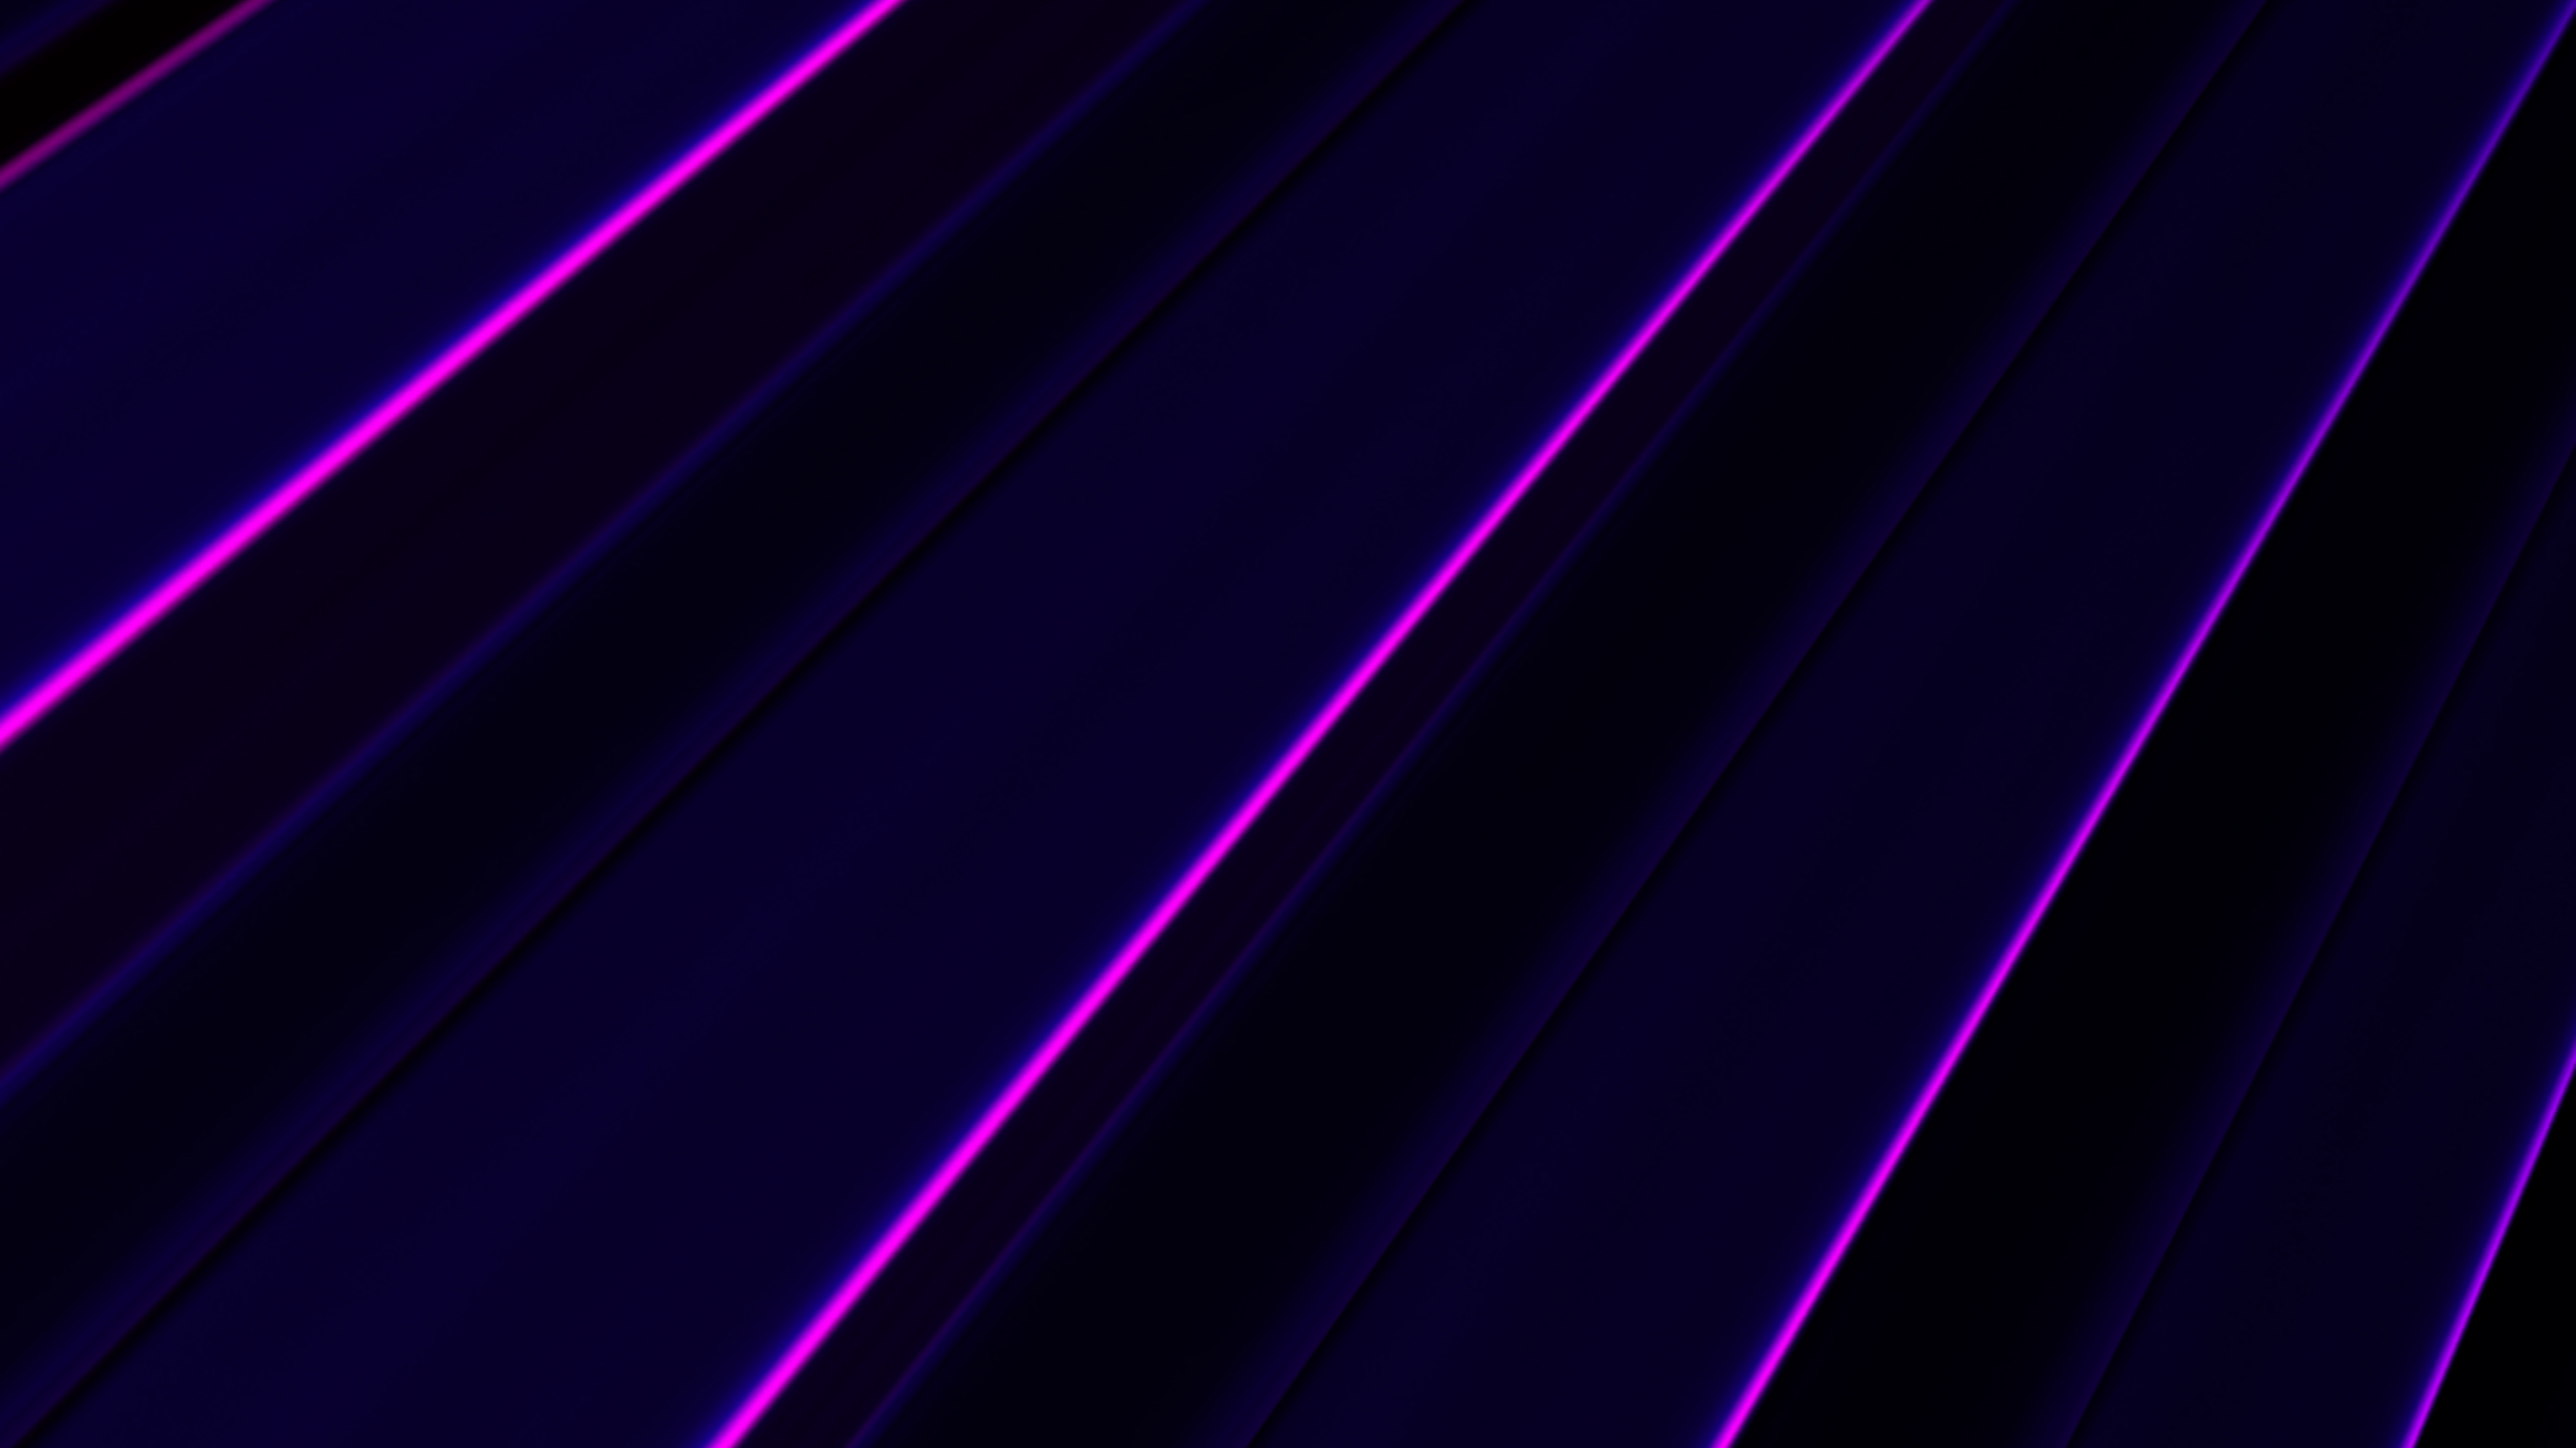 Lines Stripes Neon, HD Abstract, 4k